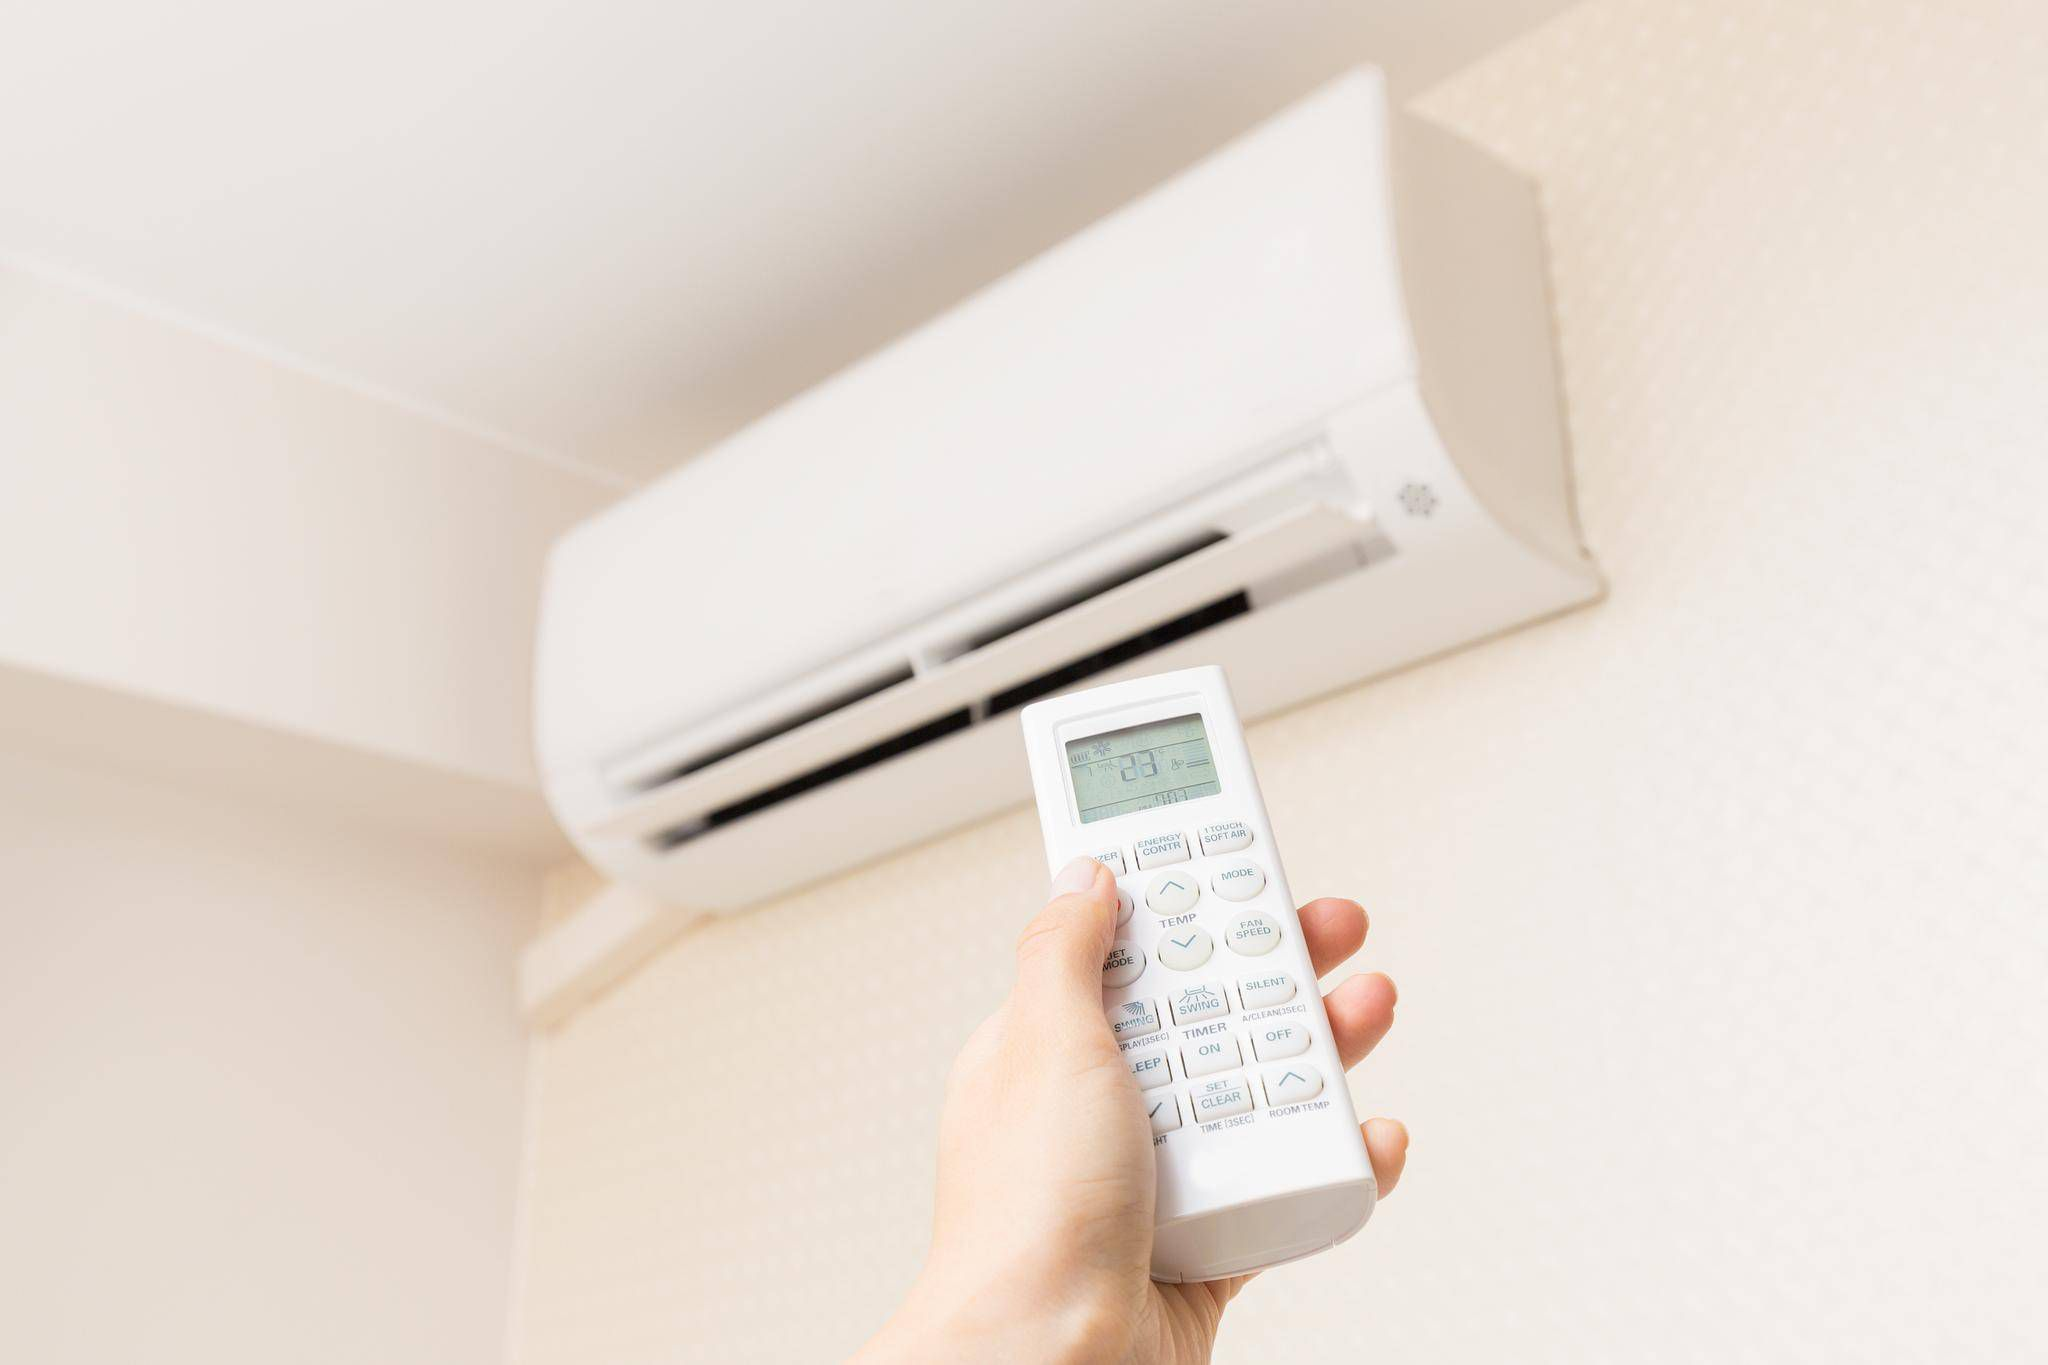 Old formula, efficient air conditioners to blame for office conflicts: BC Hydro